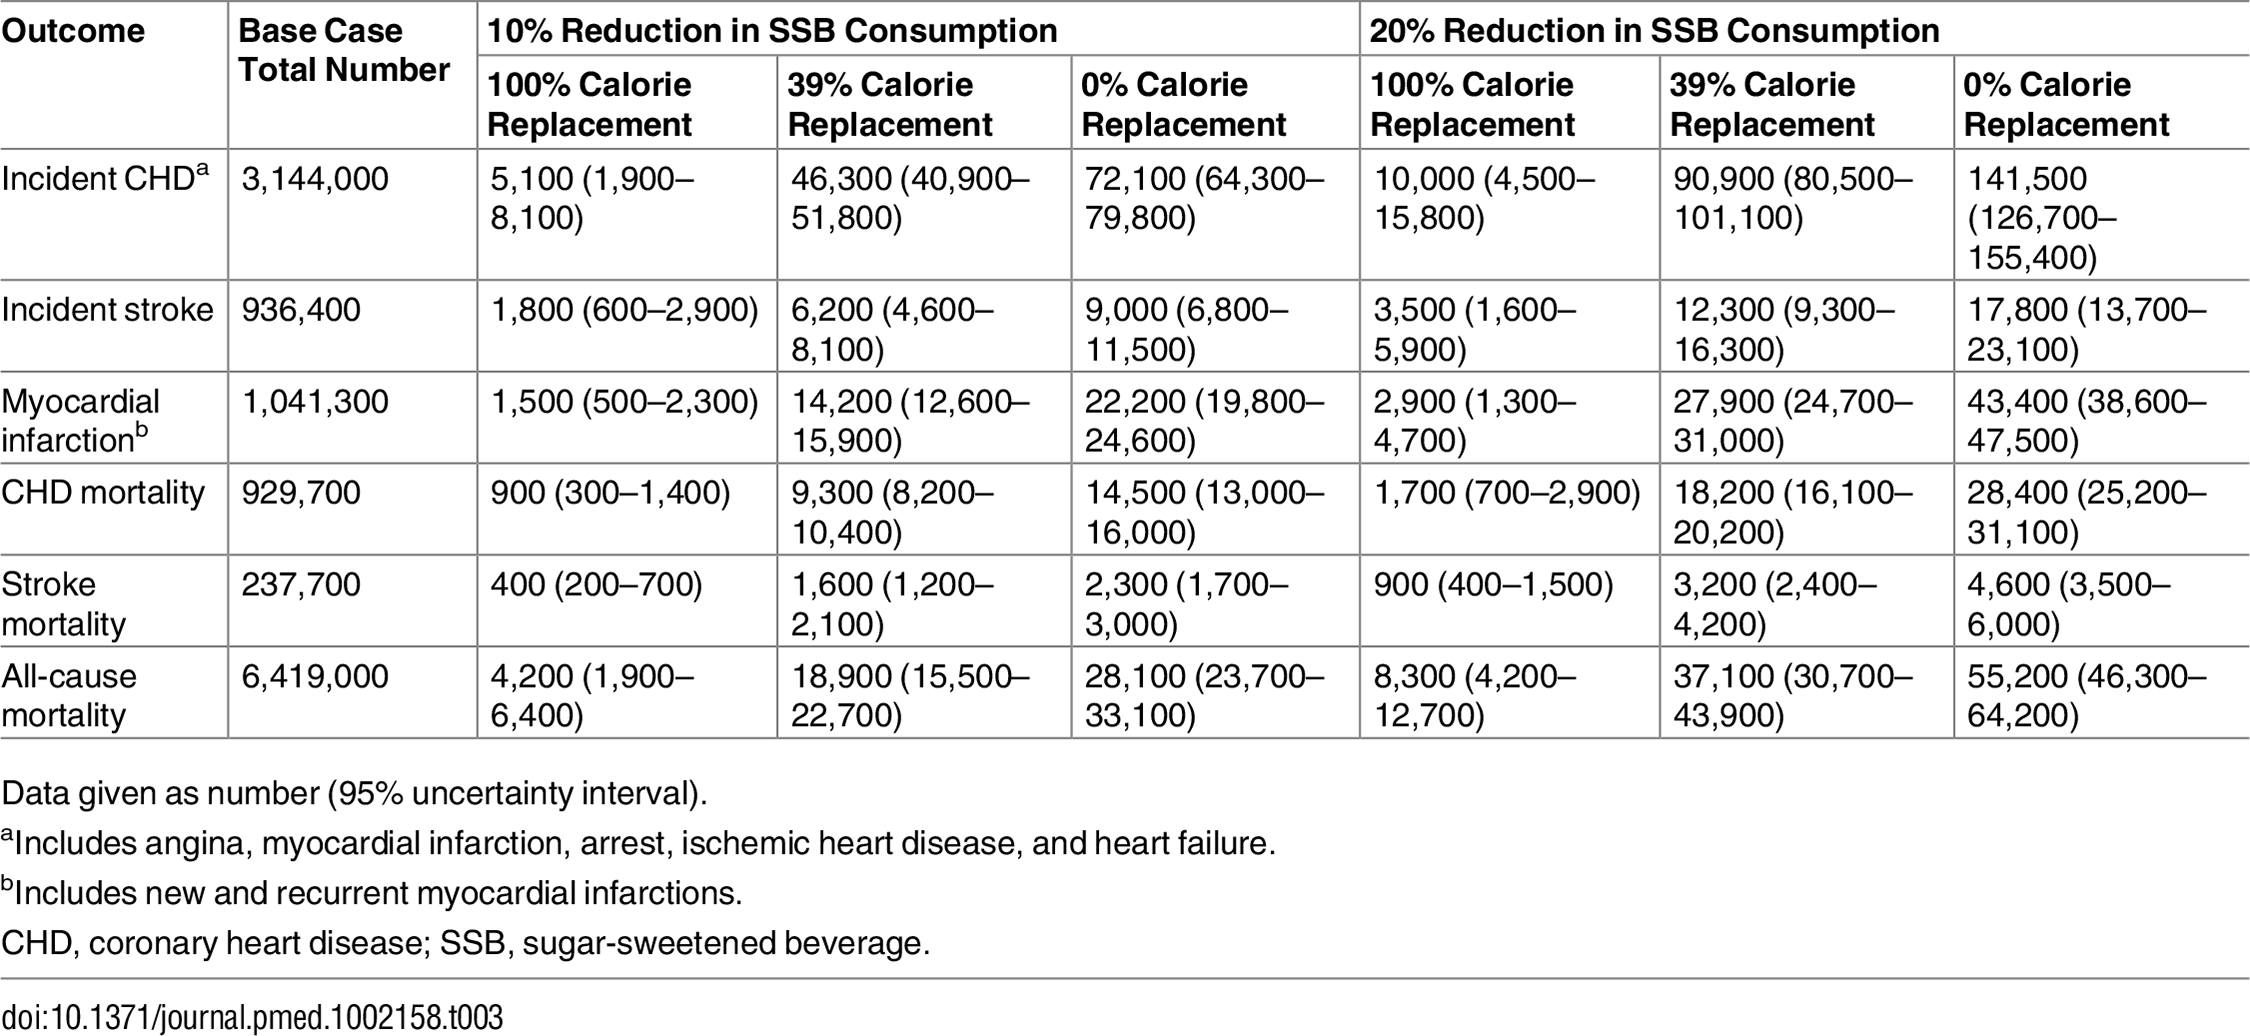 Total number of cardiovascular disease events and deaths avoided over 10 y among Mexican adults aged 35–94 y under different assumptions about sugar-sweetened beverage consumption reduction and replacement with calories from other sources.